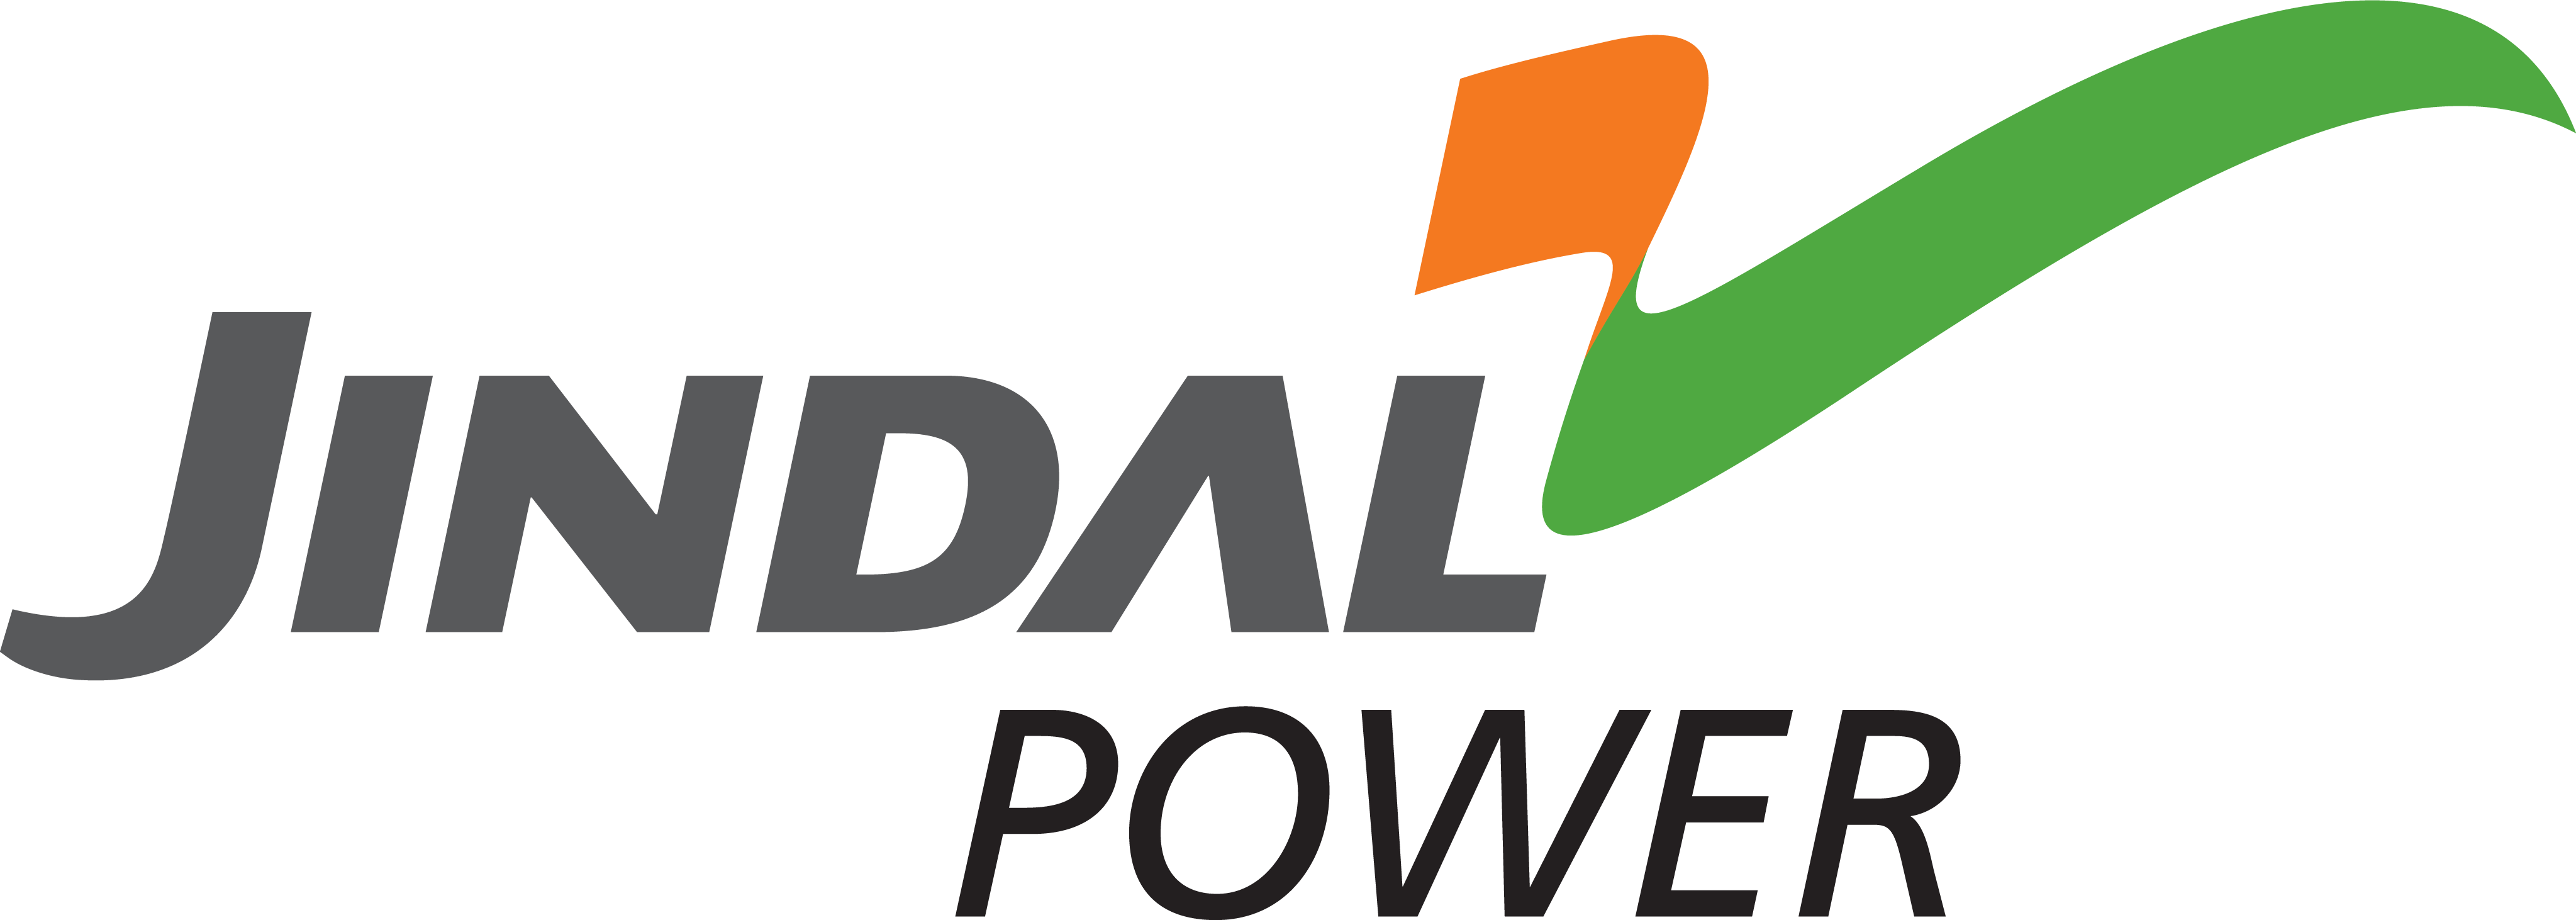 Jindal Power